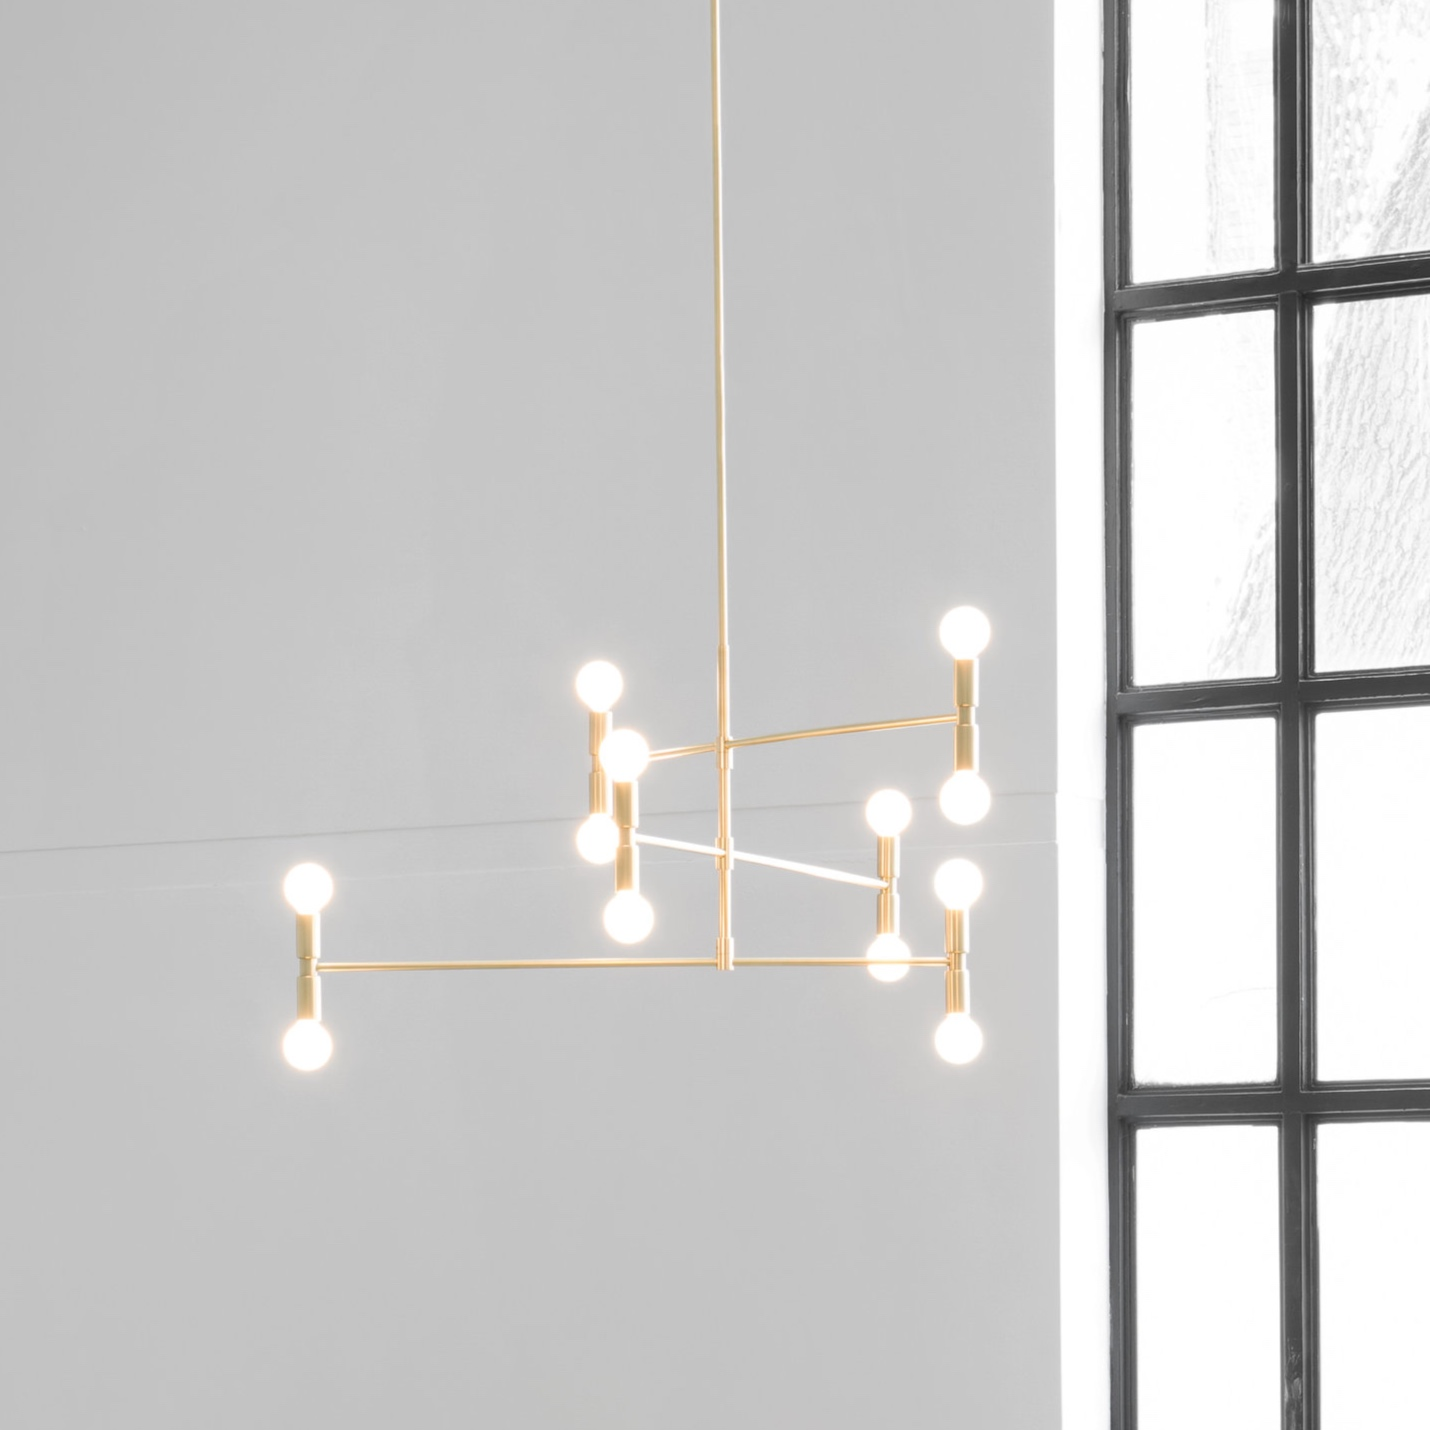 Dot - The Dot Collection combines the directness of exposed, spherical bulbs with the rich materiality of brass. Focused, geometric compositions contain these two features, balancing line, surface, and luminous points. The result is a collection of lamps based in the reflectivity of brass—lamps that are both atmospheric and firm.